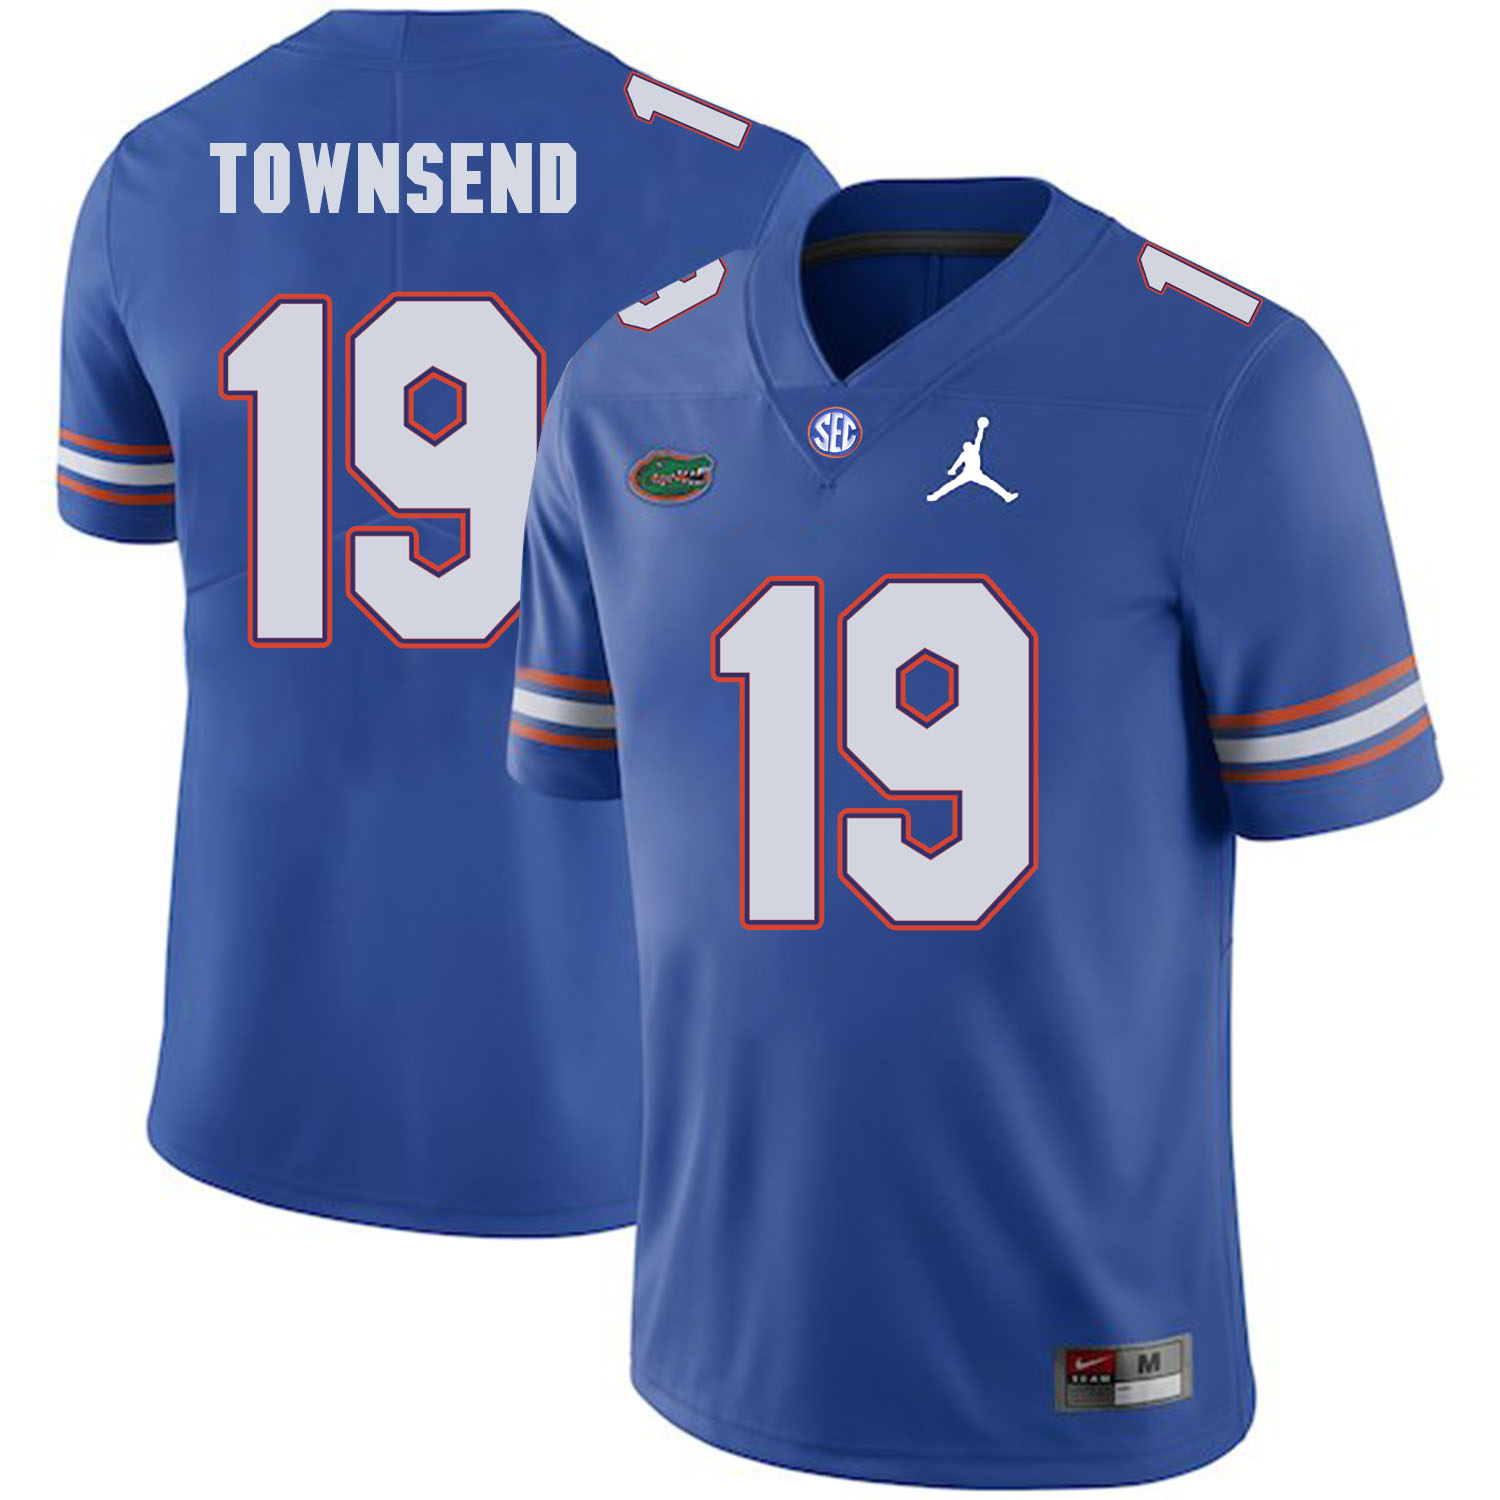 Florida Gators 19 Johnny Townsend Blue College Football Jersey